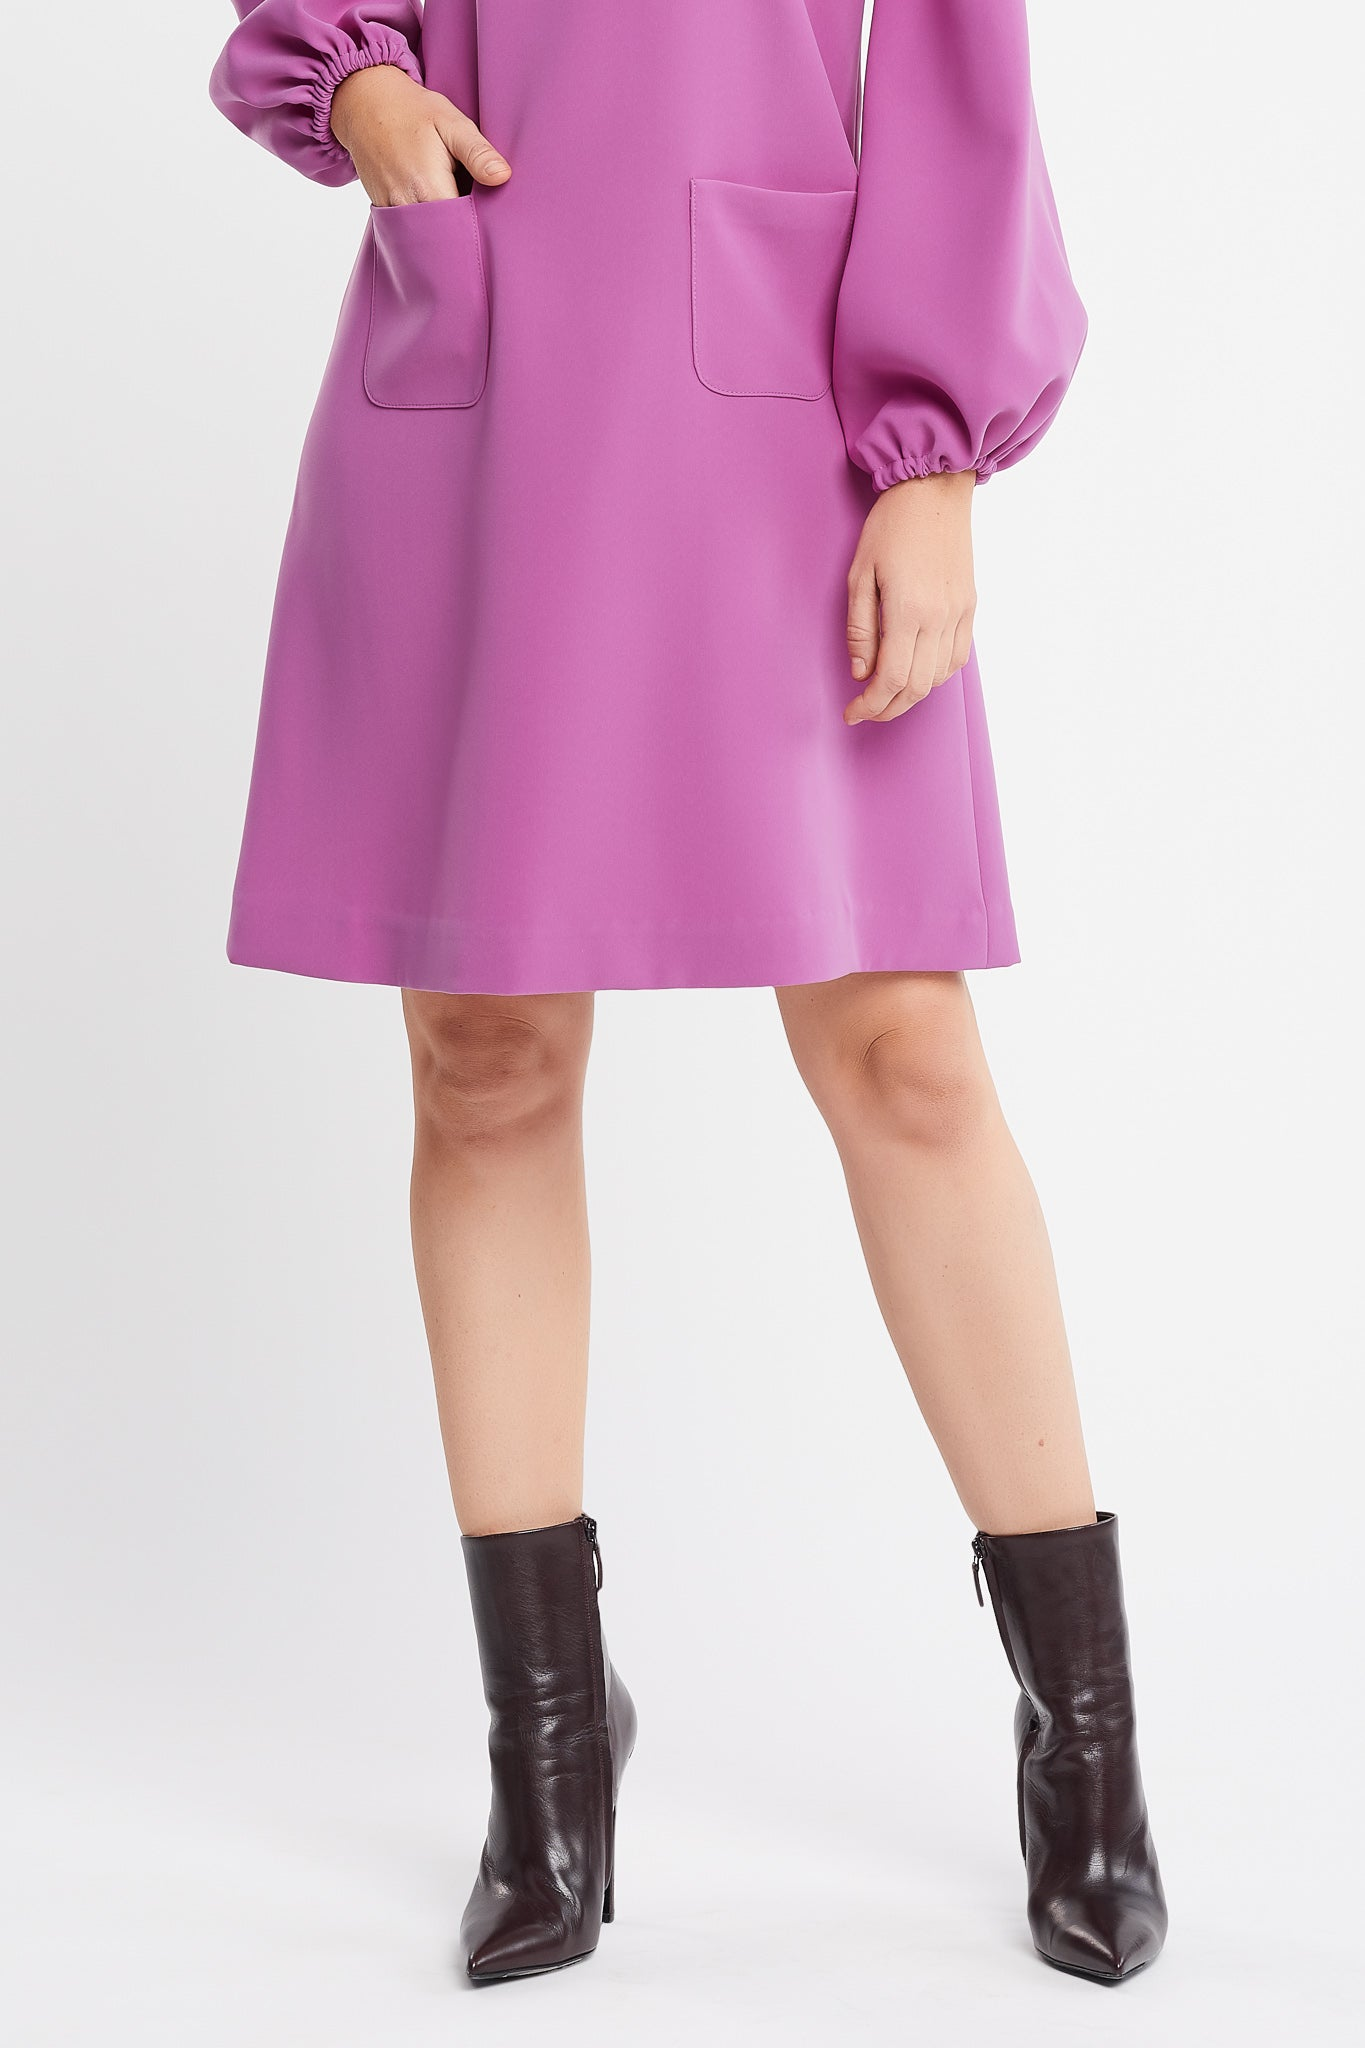 Karima Long Sleeve A-line Pink Work and Cocktail Dress